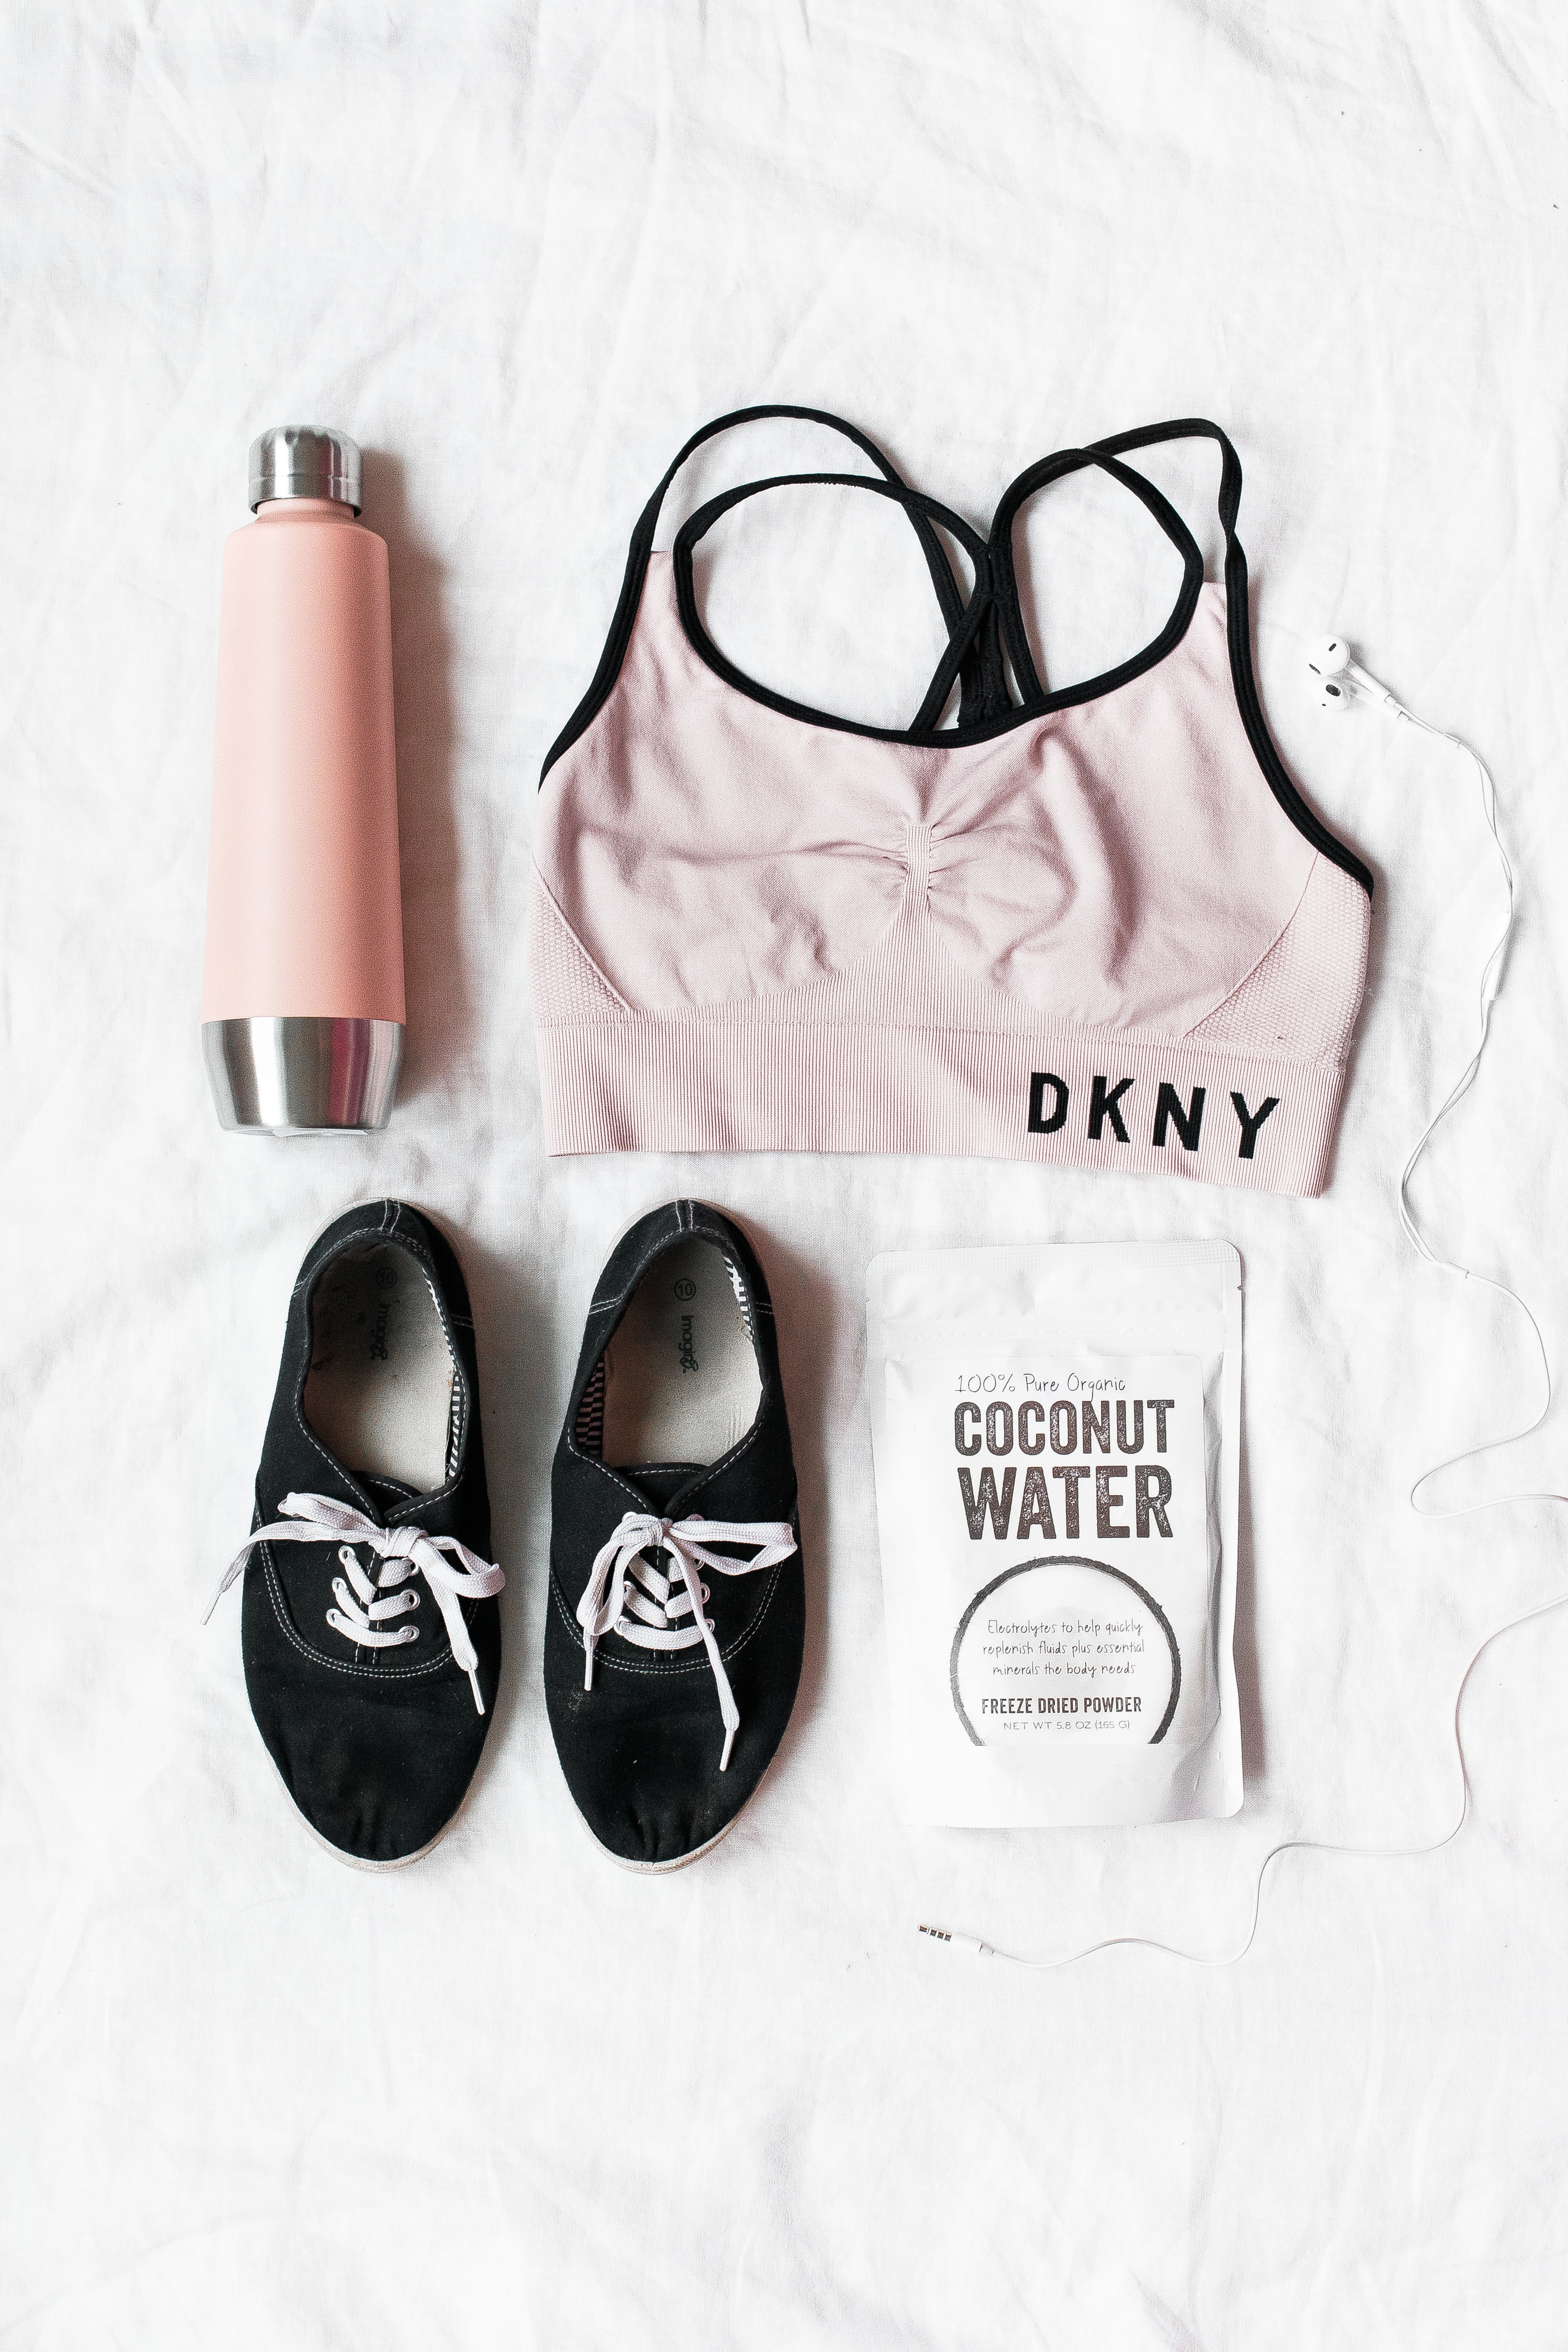 Short workout ideas for busy bees